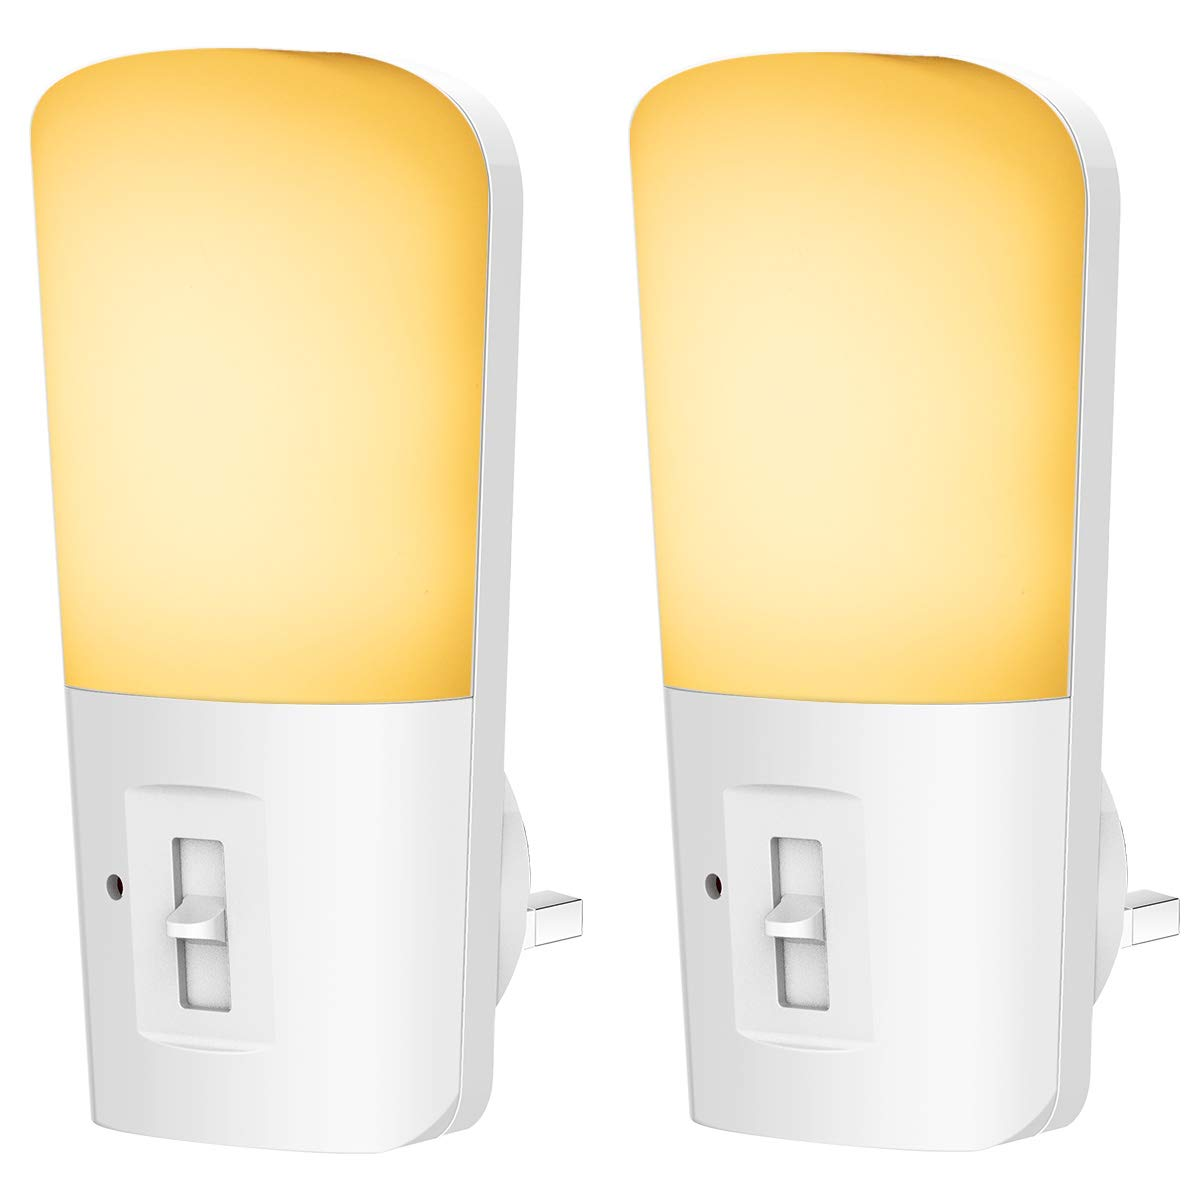 LOHAS Automatic 0.3W LED Night Light Plug-in, Warm White, Dusk Till Dawn Daylight Sensor Smart Light, Energy Saving Design for Children's Room, Living Room(Three-Pin Plug) 4 Pack Energy Saving Design for Children's Room GK-Lighting